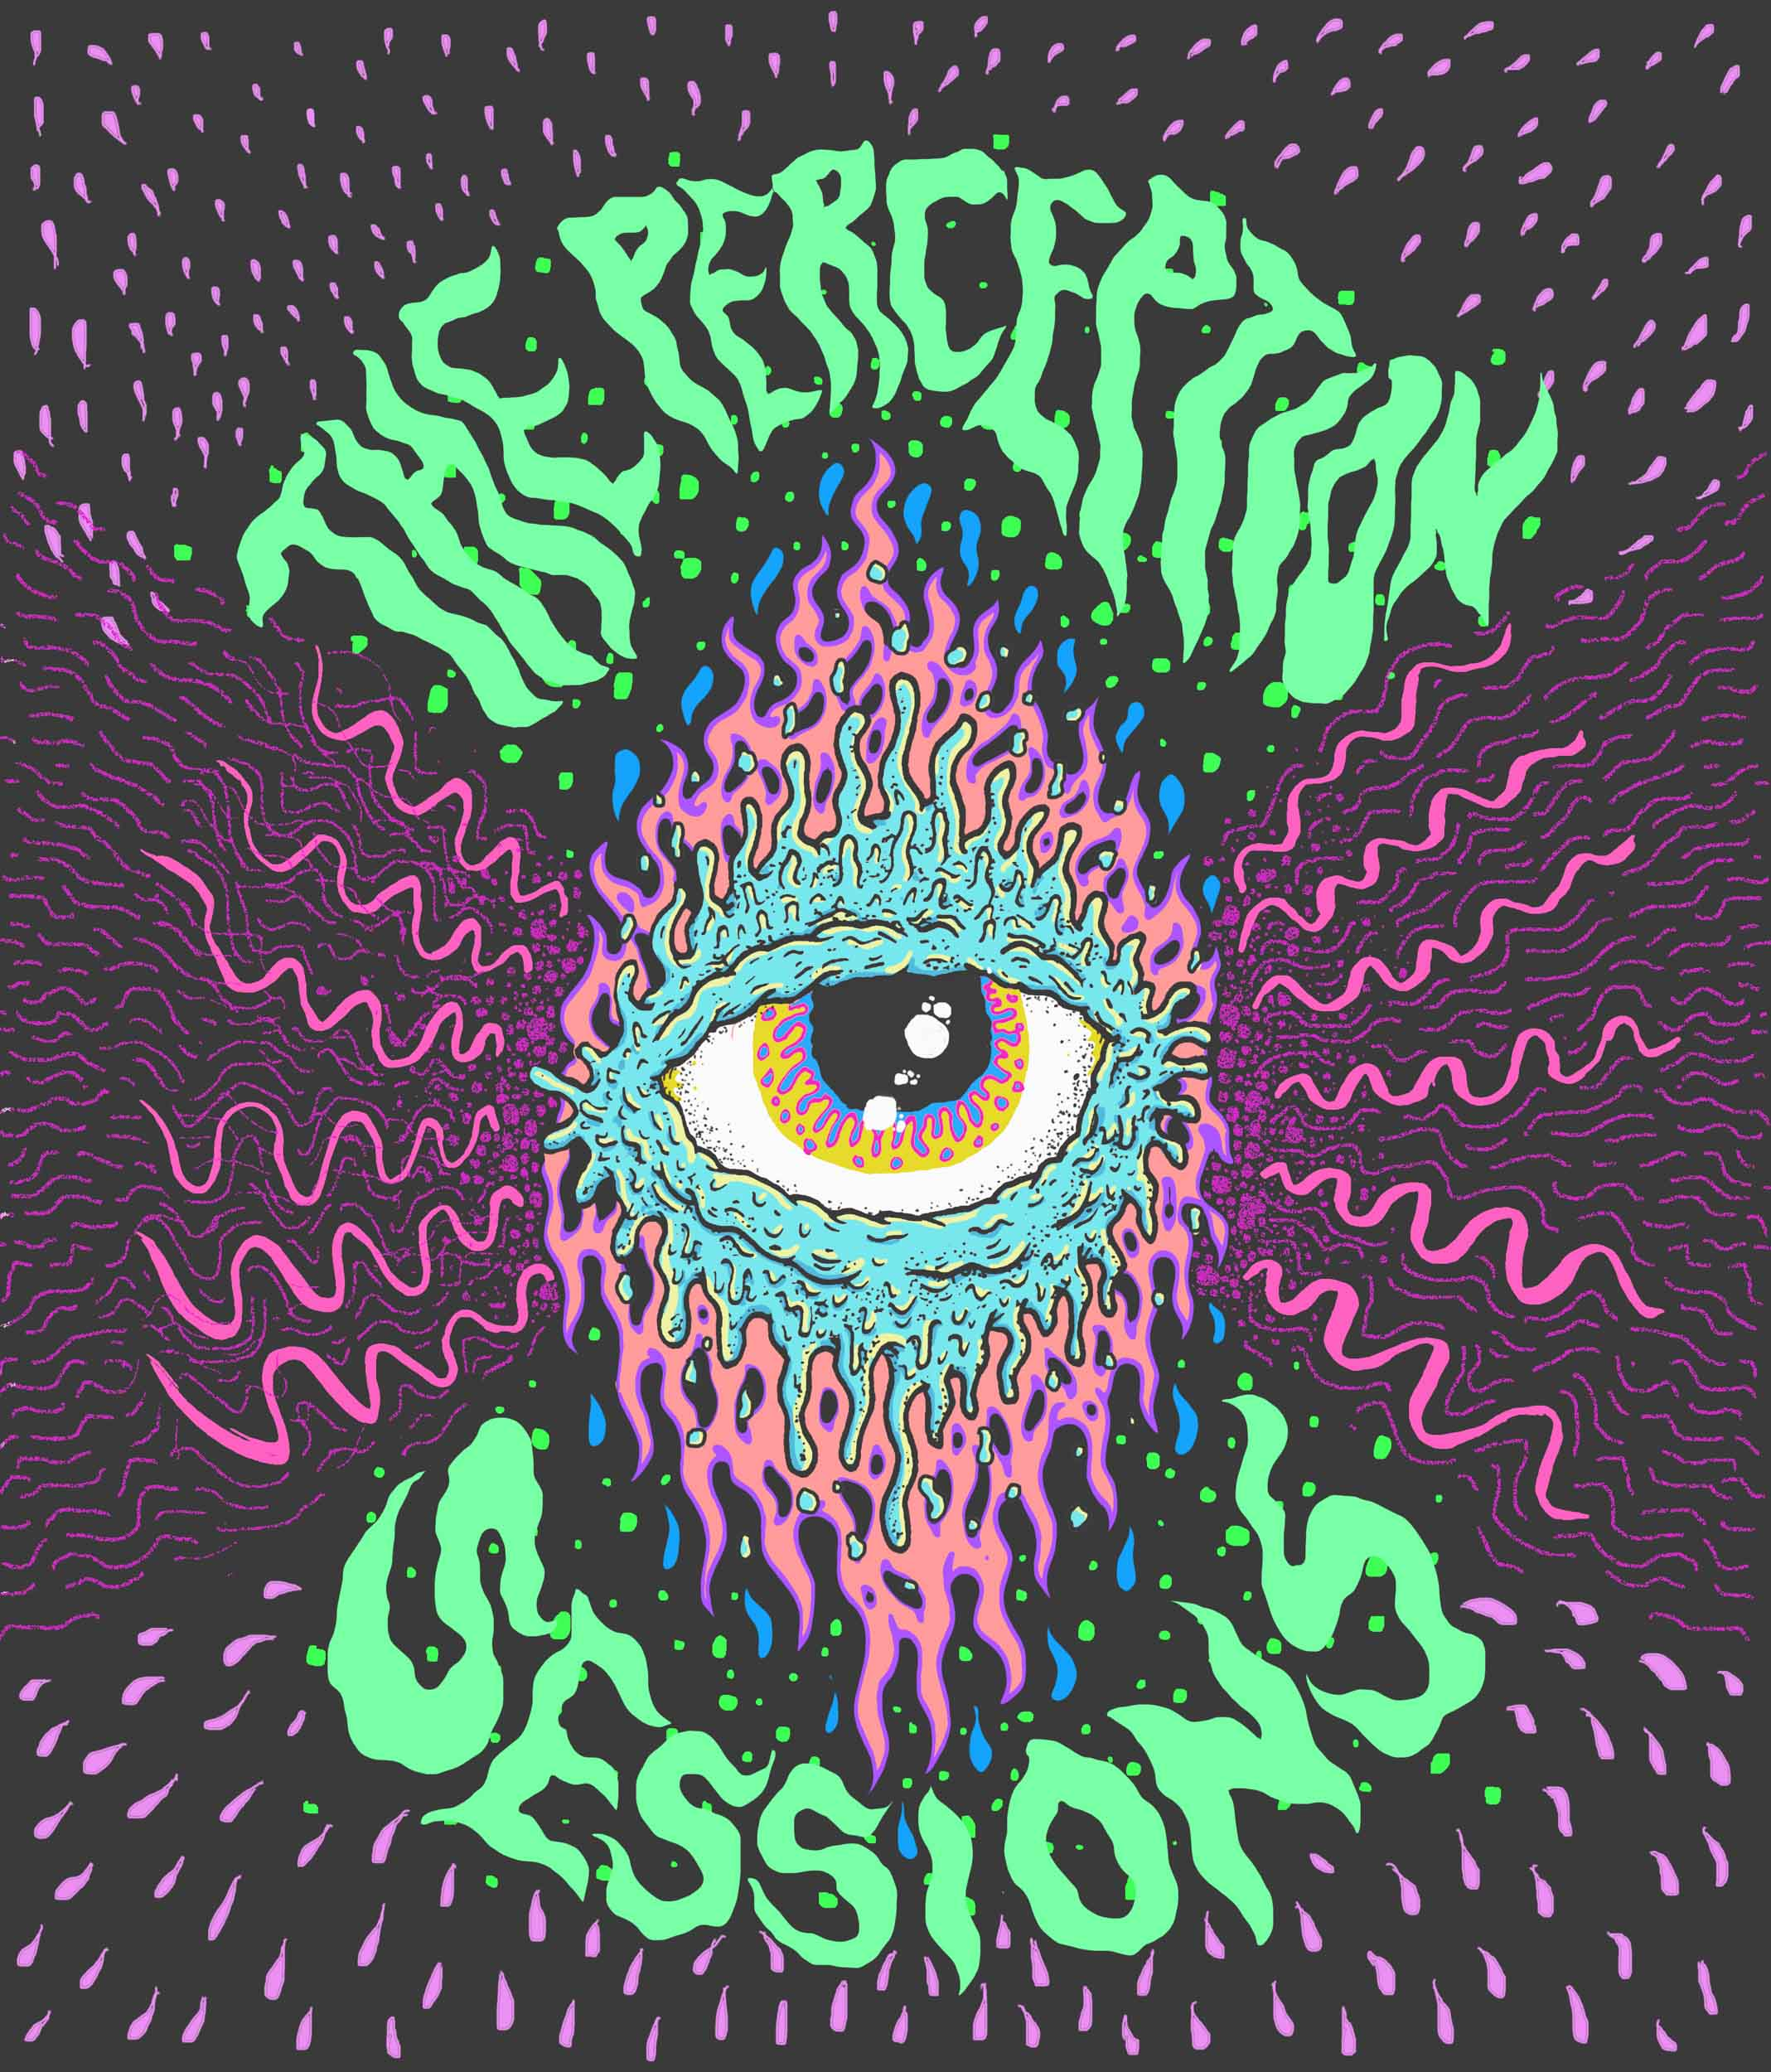 The Perception Sessions